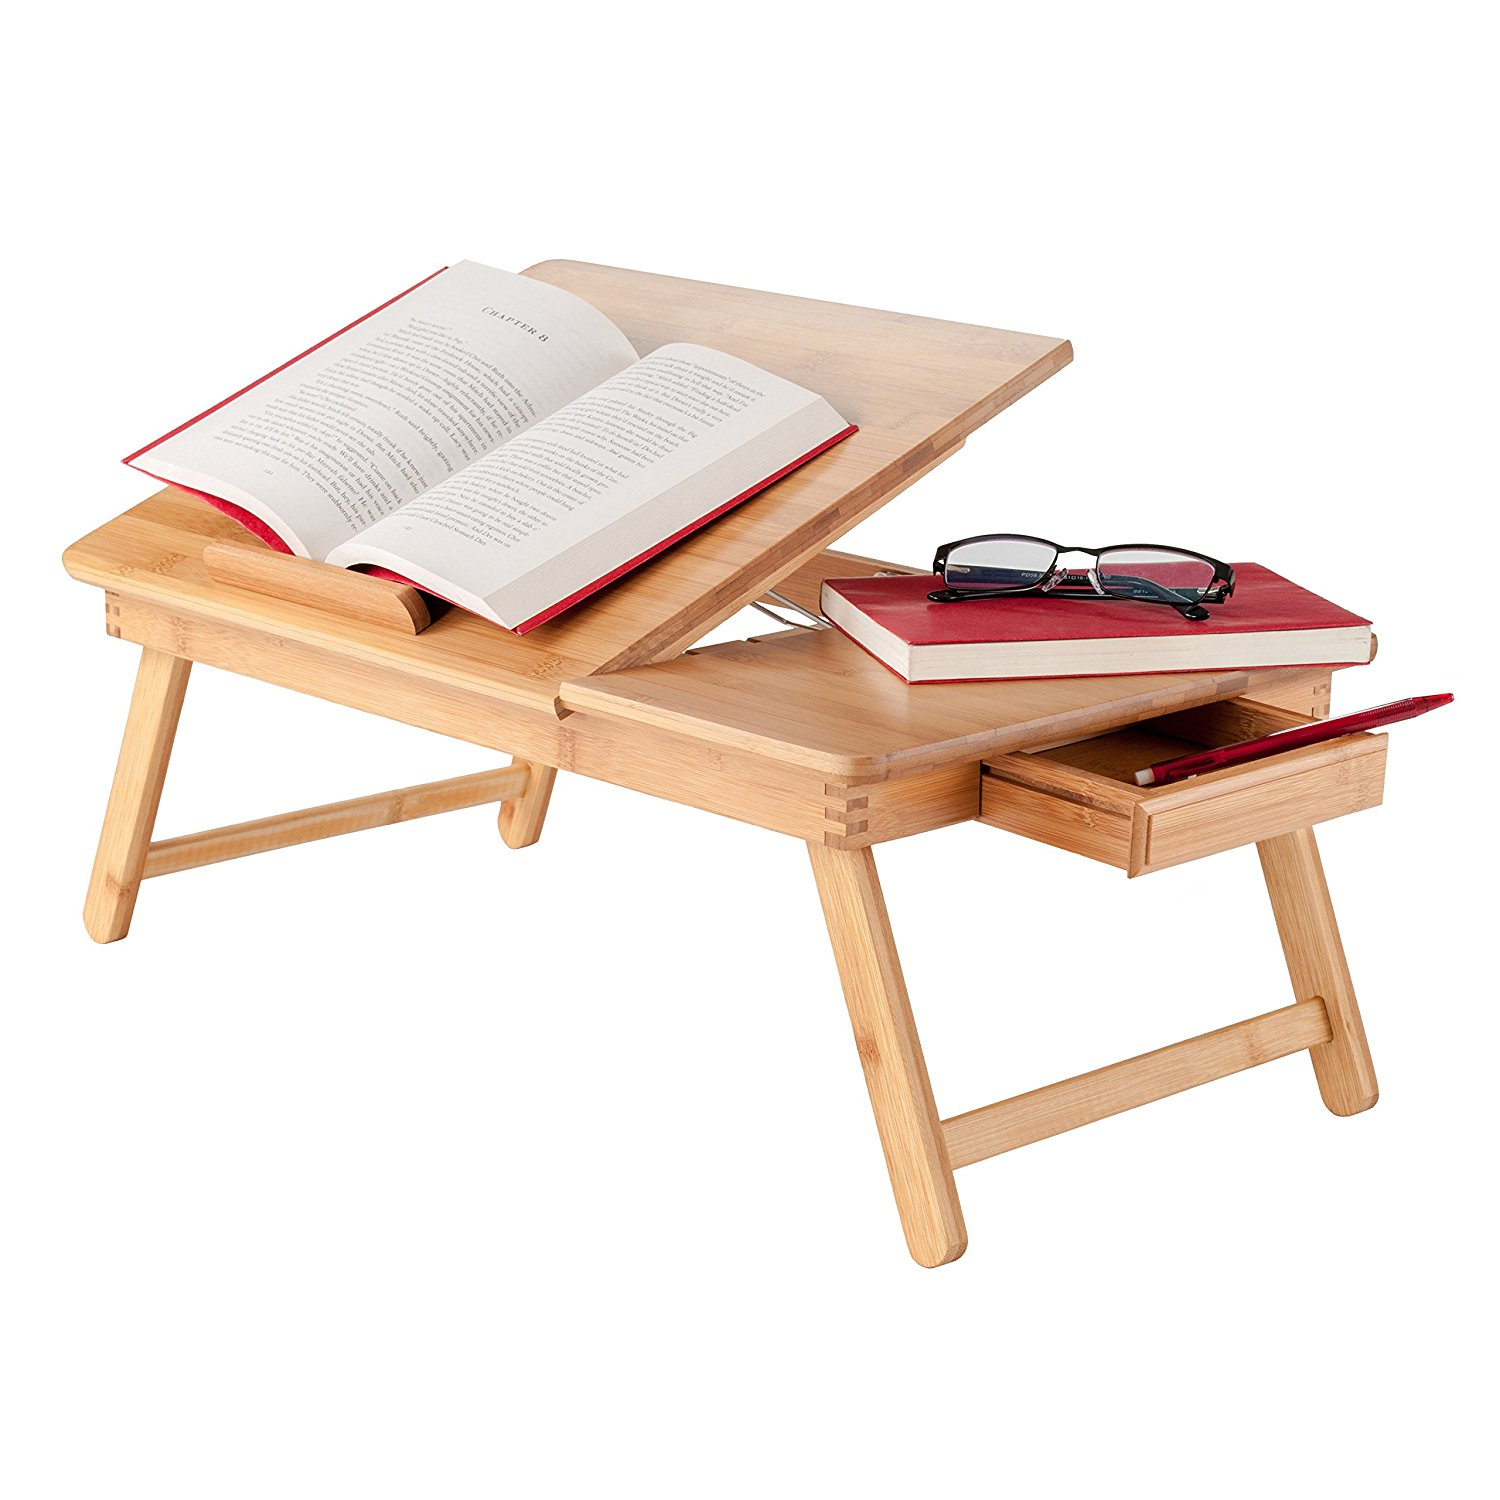 Picture of: My Bamboo Folding Lap Desk Table Tray Laptop Books Snack Breakfast In Bed Serving Buy Bamboo Folding Lap Desk Table Tray Laptop Books Snack Breakfast In Bed Serving Laptop Bamboo Computer Lap